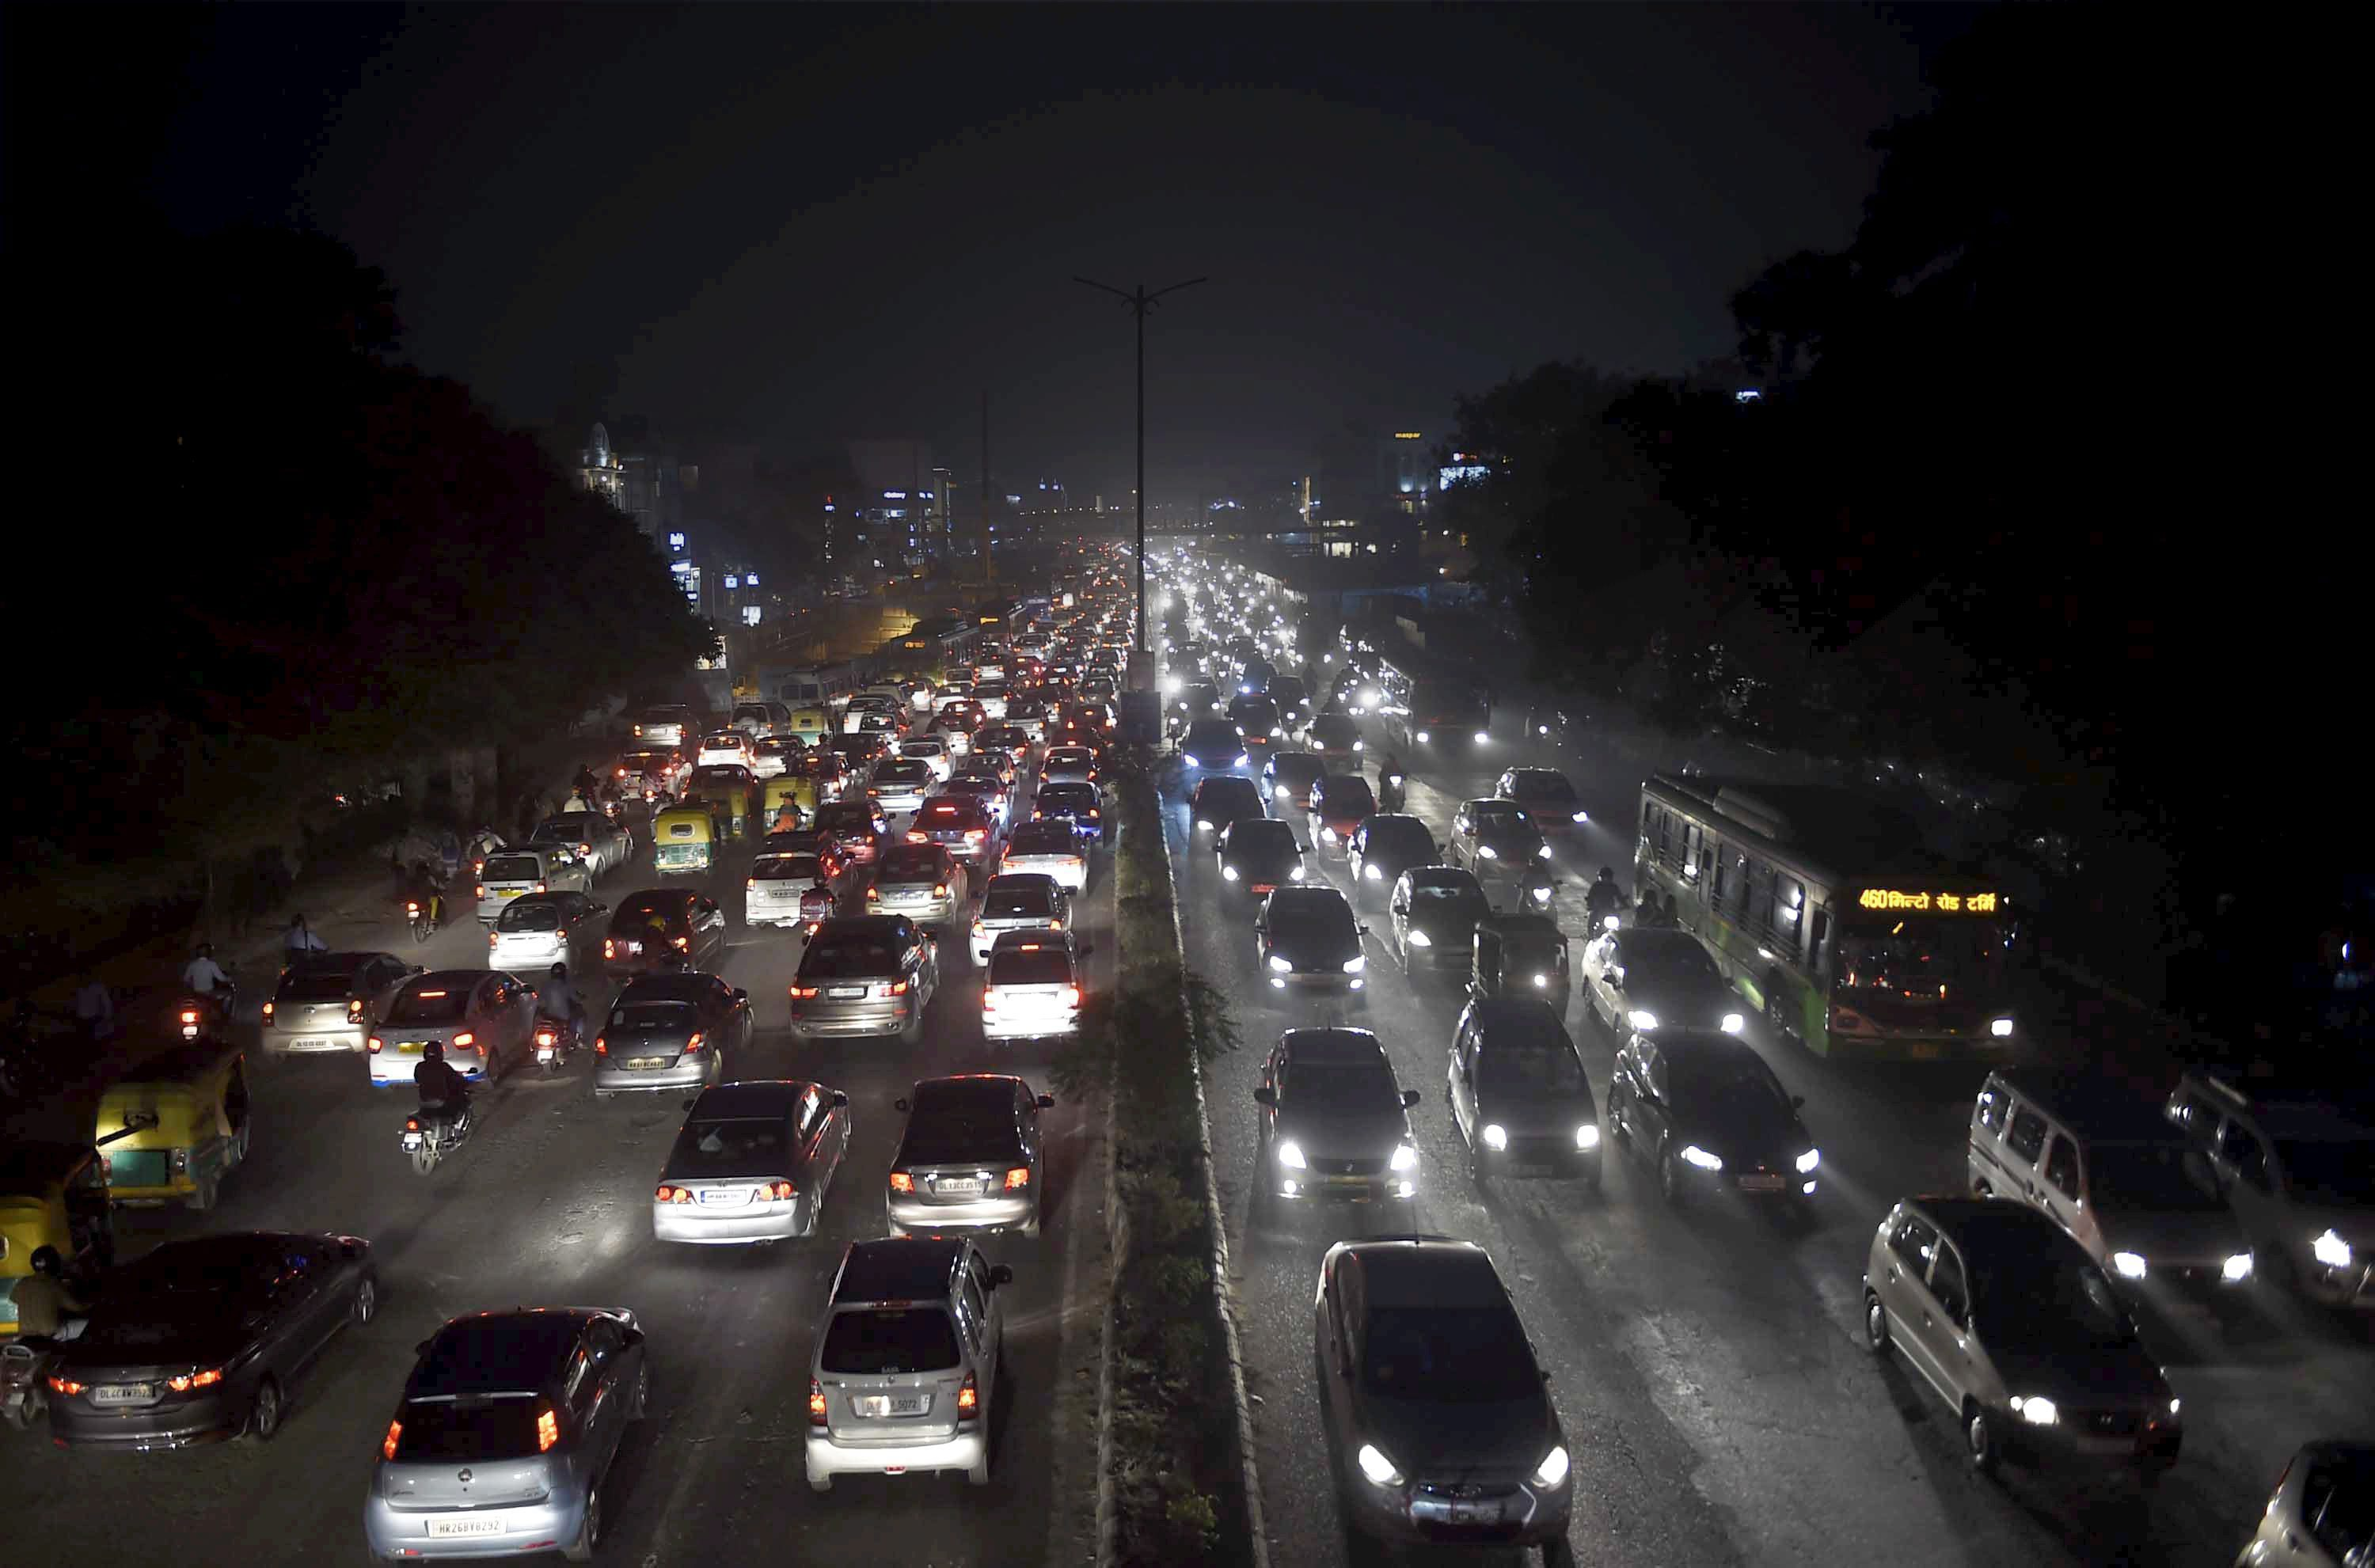 New Delhi: Vehicles ply at slow pace near South Ext. Market due to smog in New Delhi on Tuesday. Air quality in Delhi dropped to 'severe' level on Tuesday as pollution levels crossed permissible levels by multiple times. Visibility in Delhi NCR dropped as smog enveloped the city. PTI Photo by Kamal Singh(PTI11_7_2017_000226B)